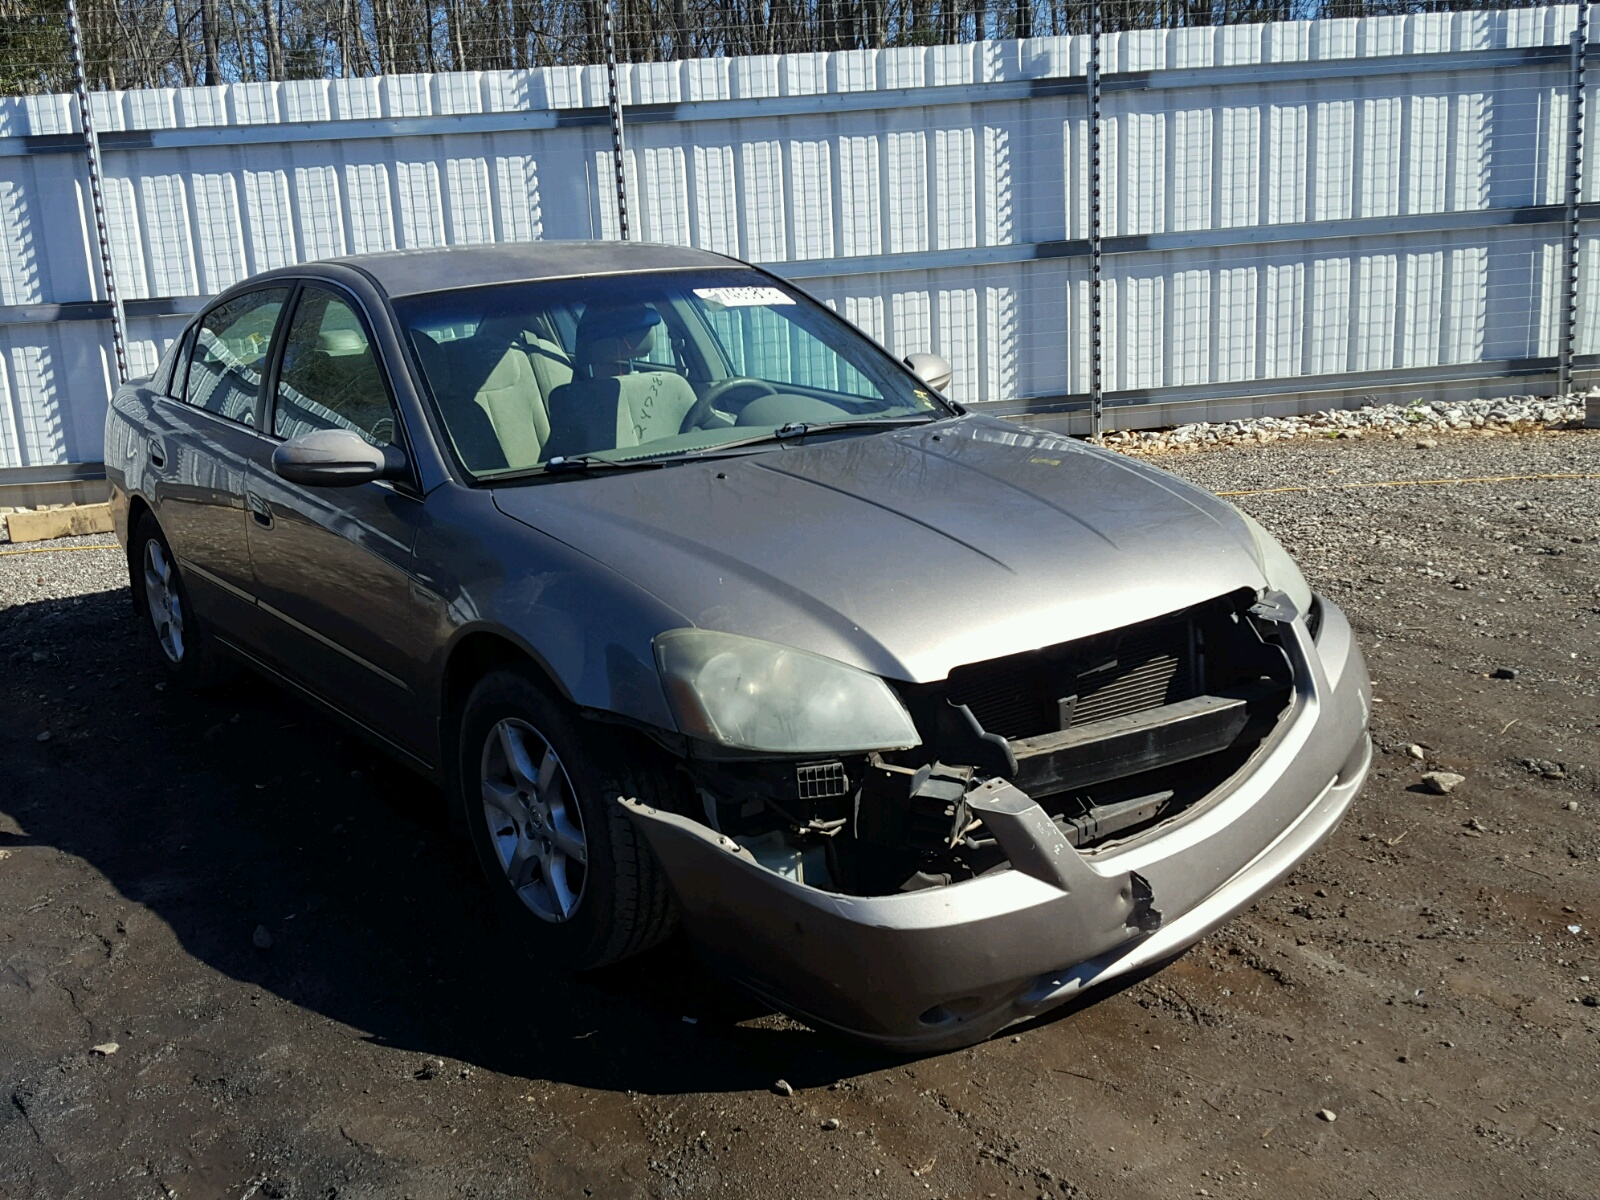 Auto Auction Ended on VIN 1N4AL11D66C 2006 NISSAN ALTIMA S in